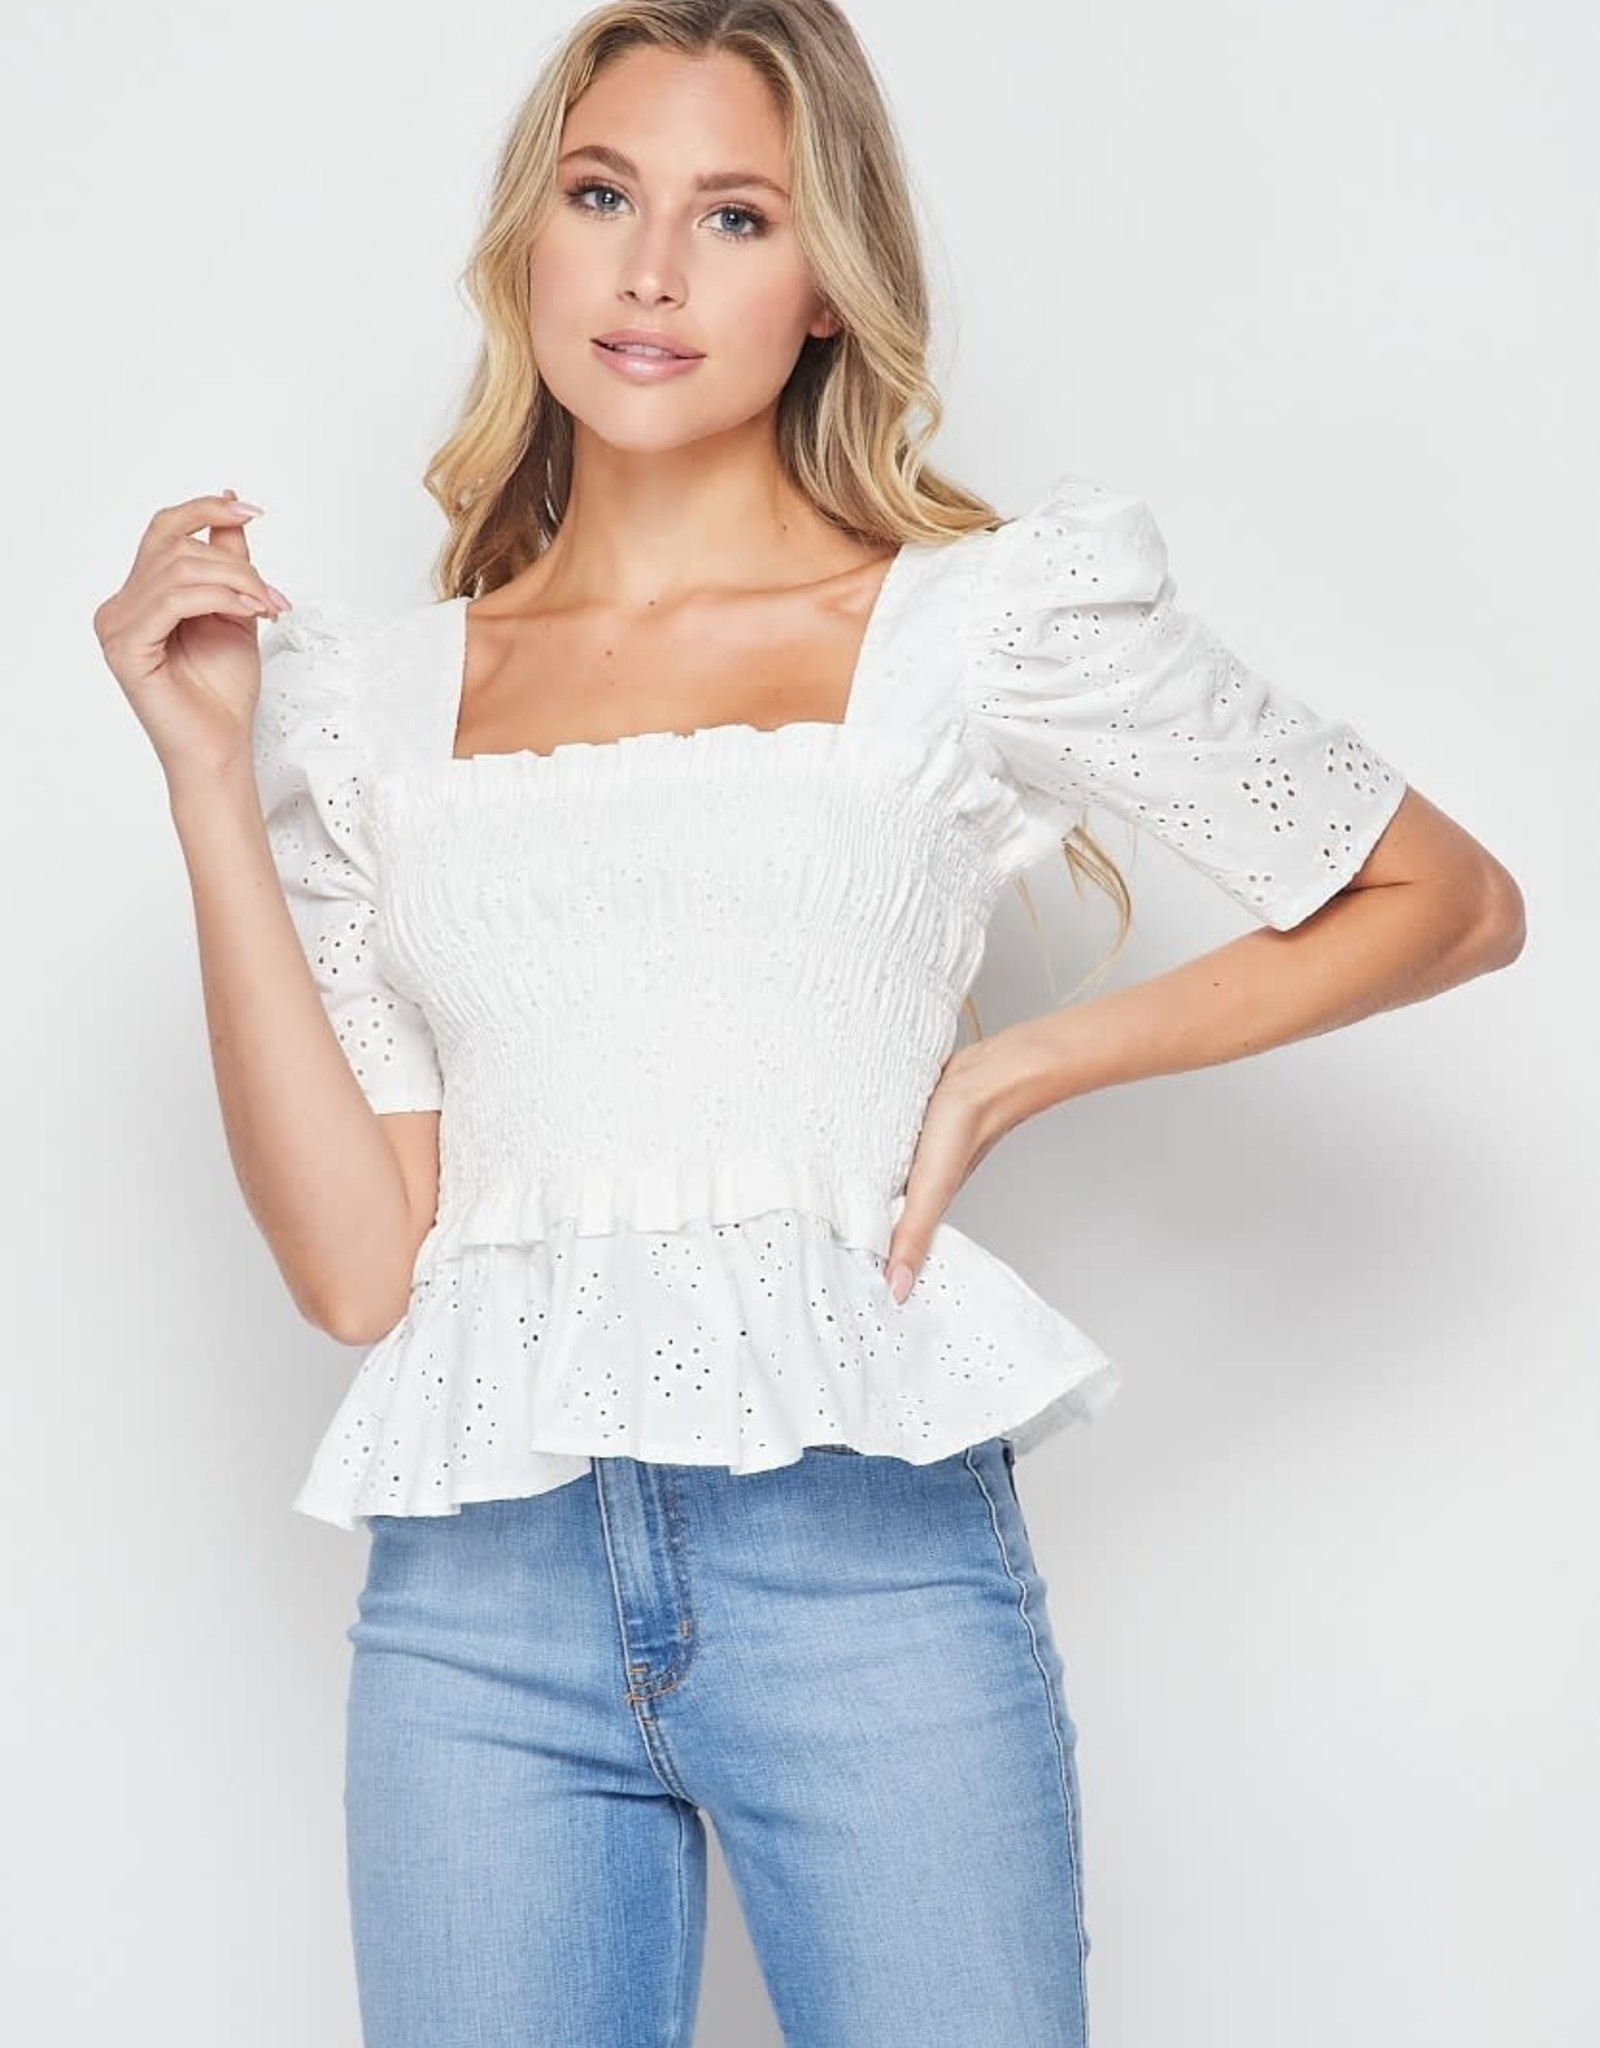 Miss Bliss Smocking Top with Puff Top